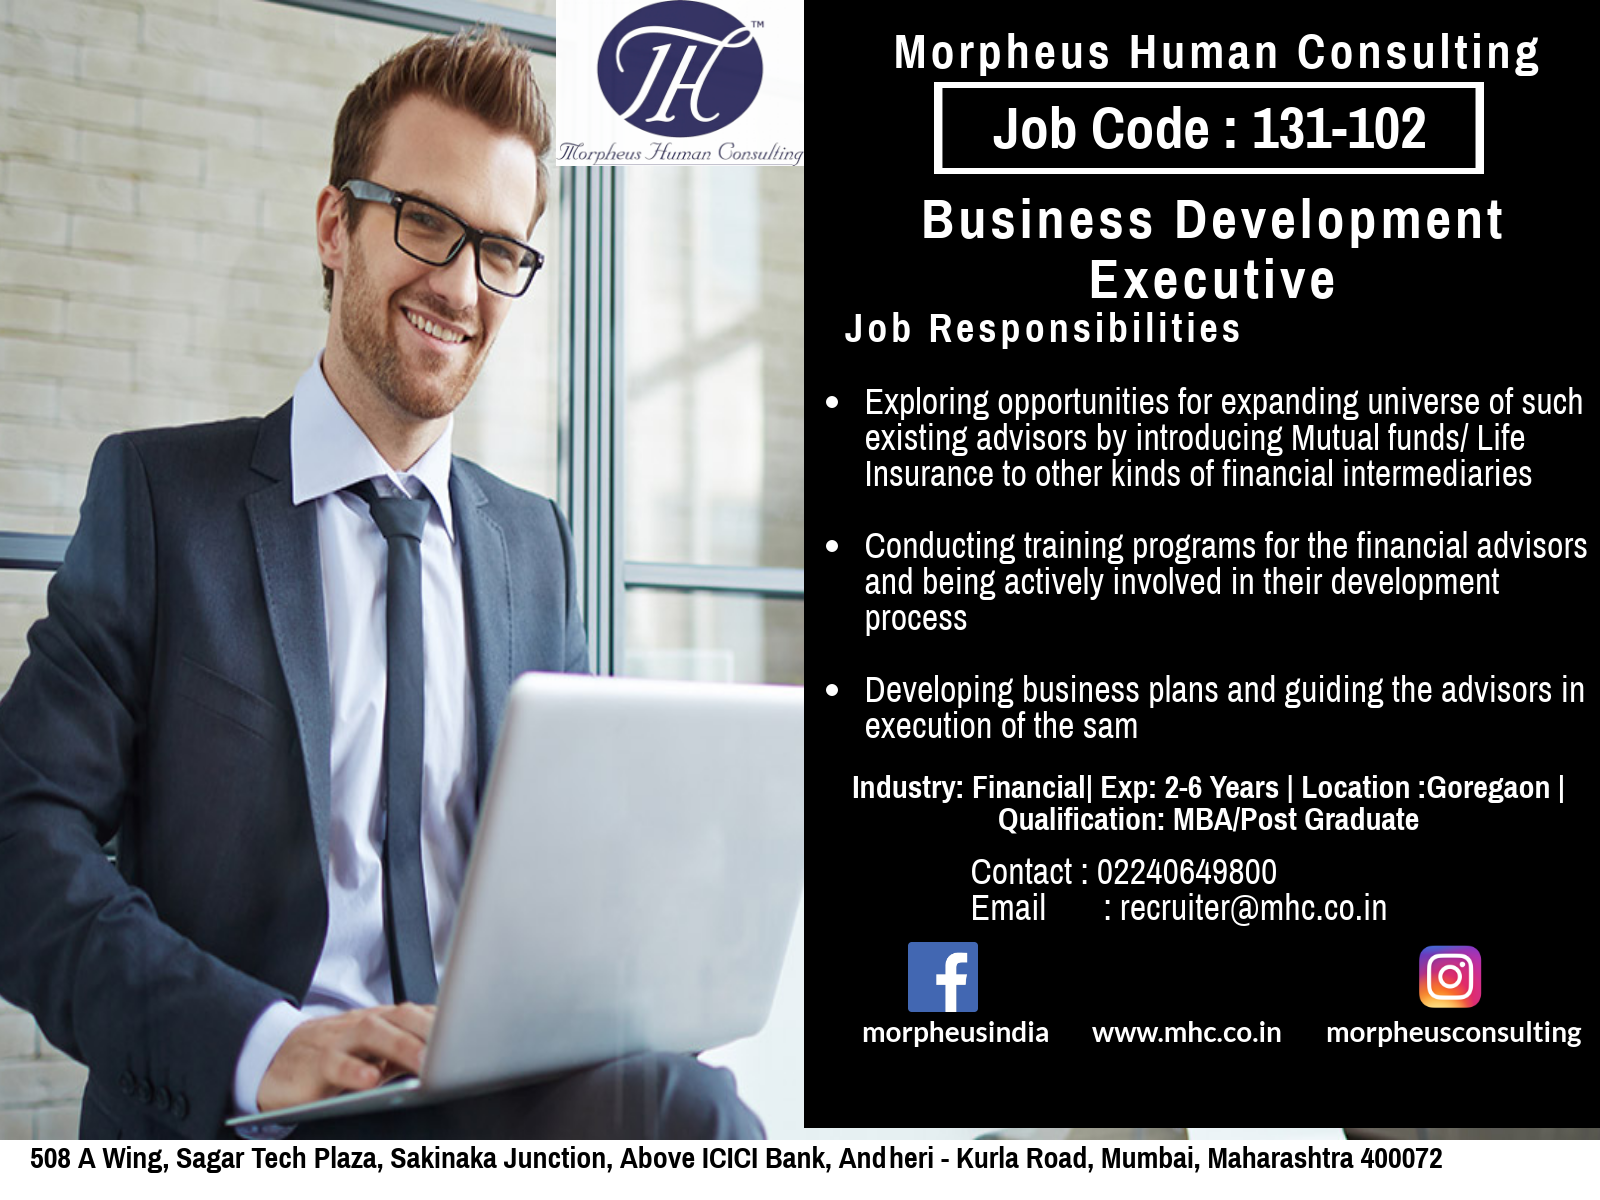 We Are Looking For A Business Development Executive In Mumbai For